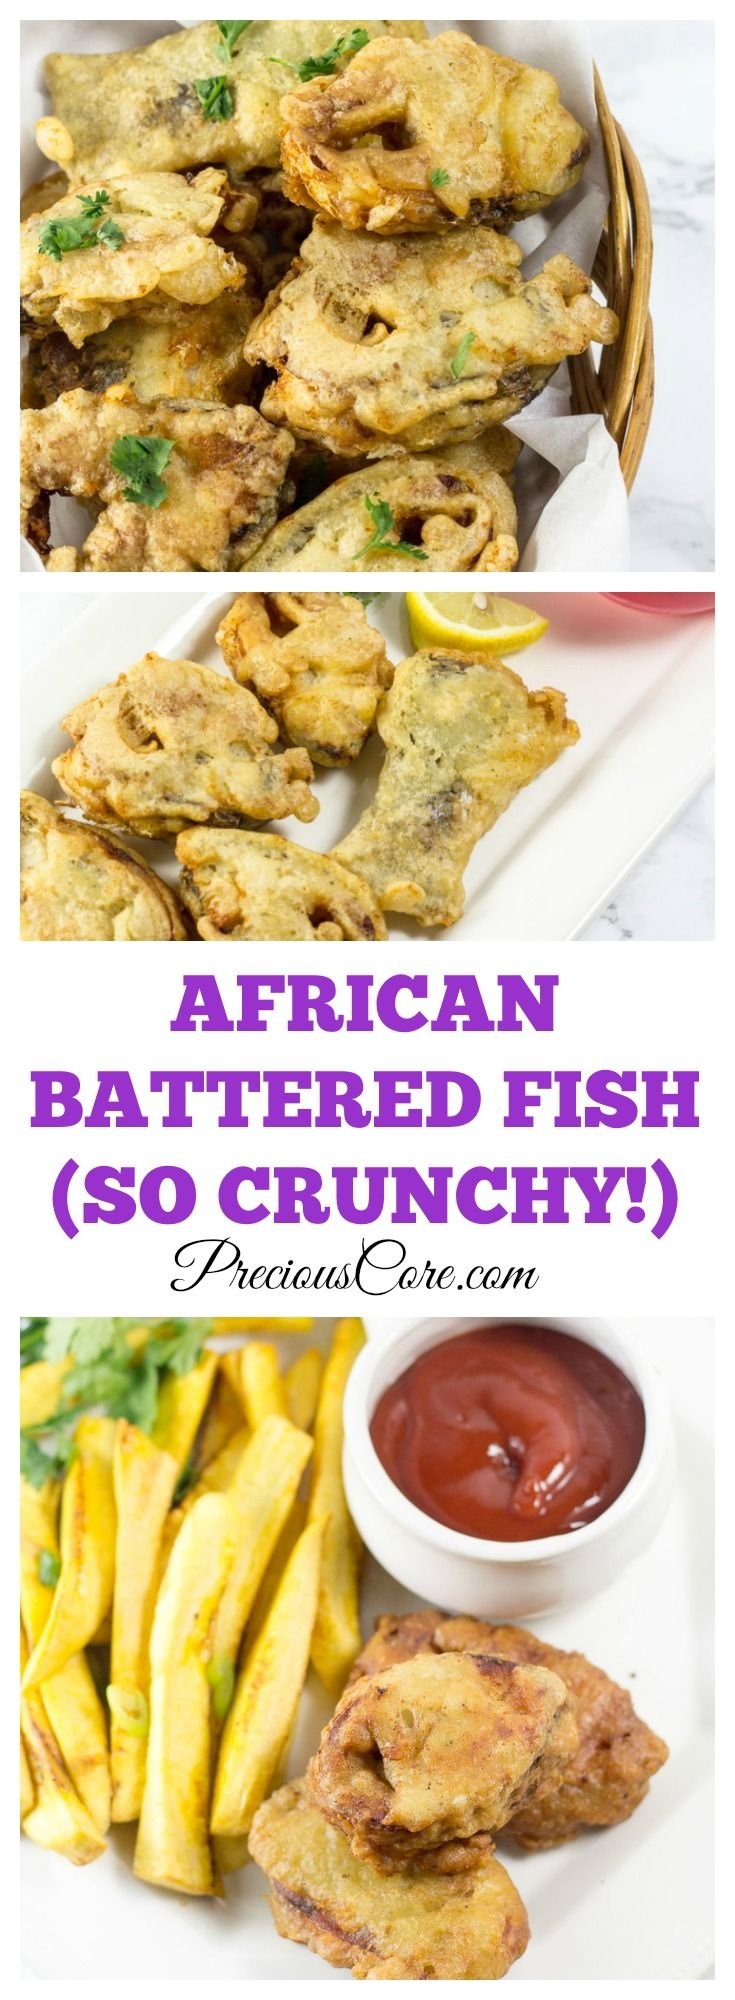 134 Best Images About Cameroonian Recipes On Pinterest